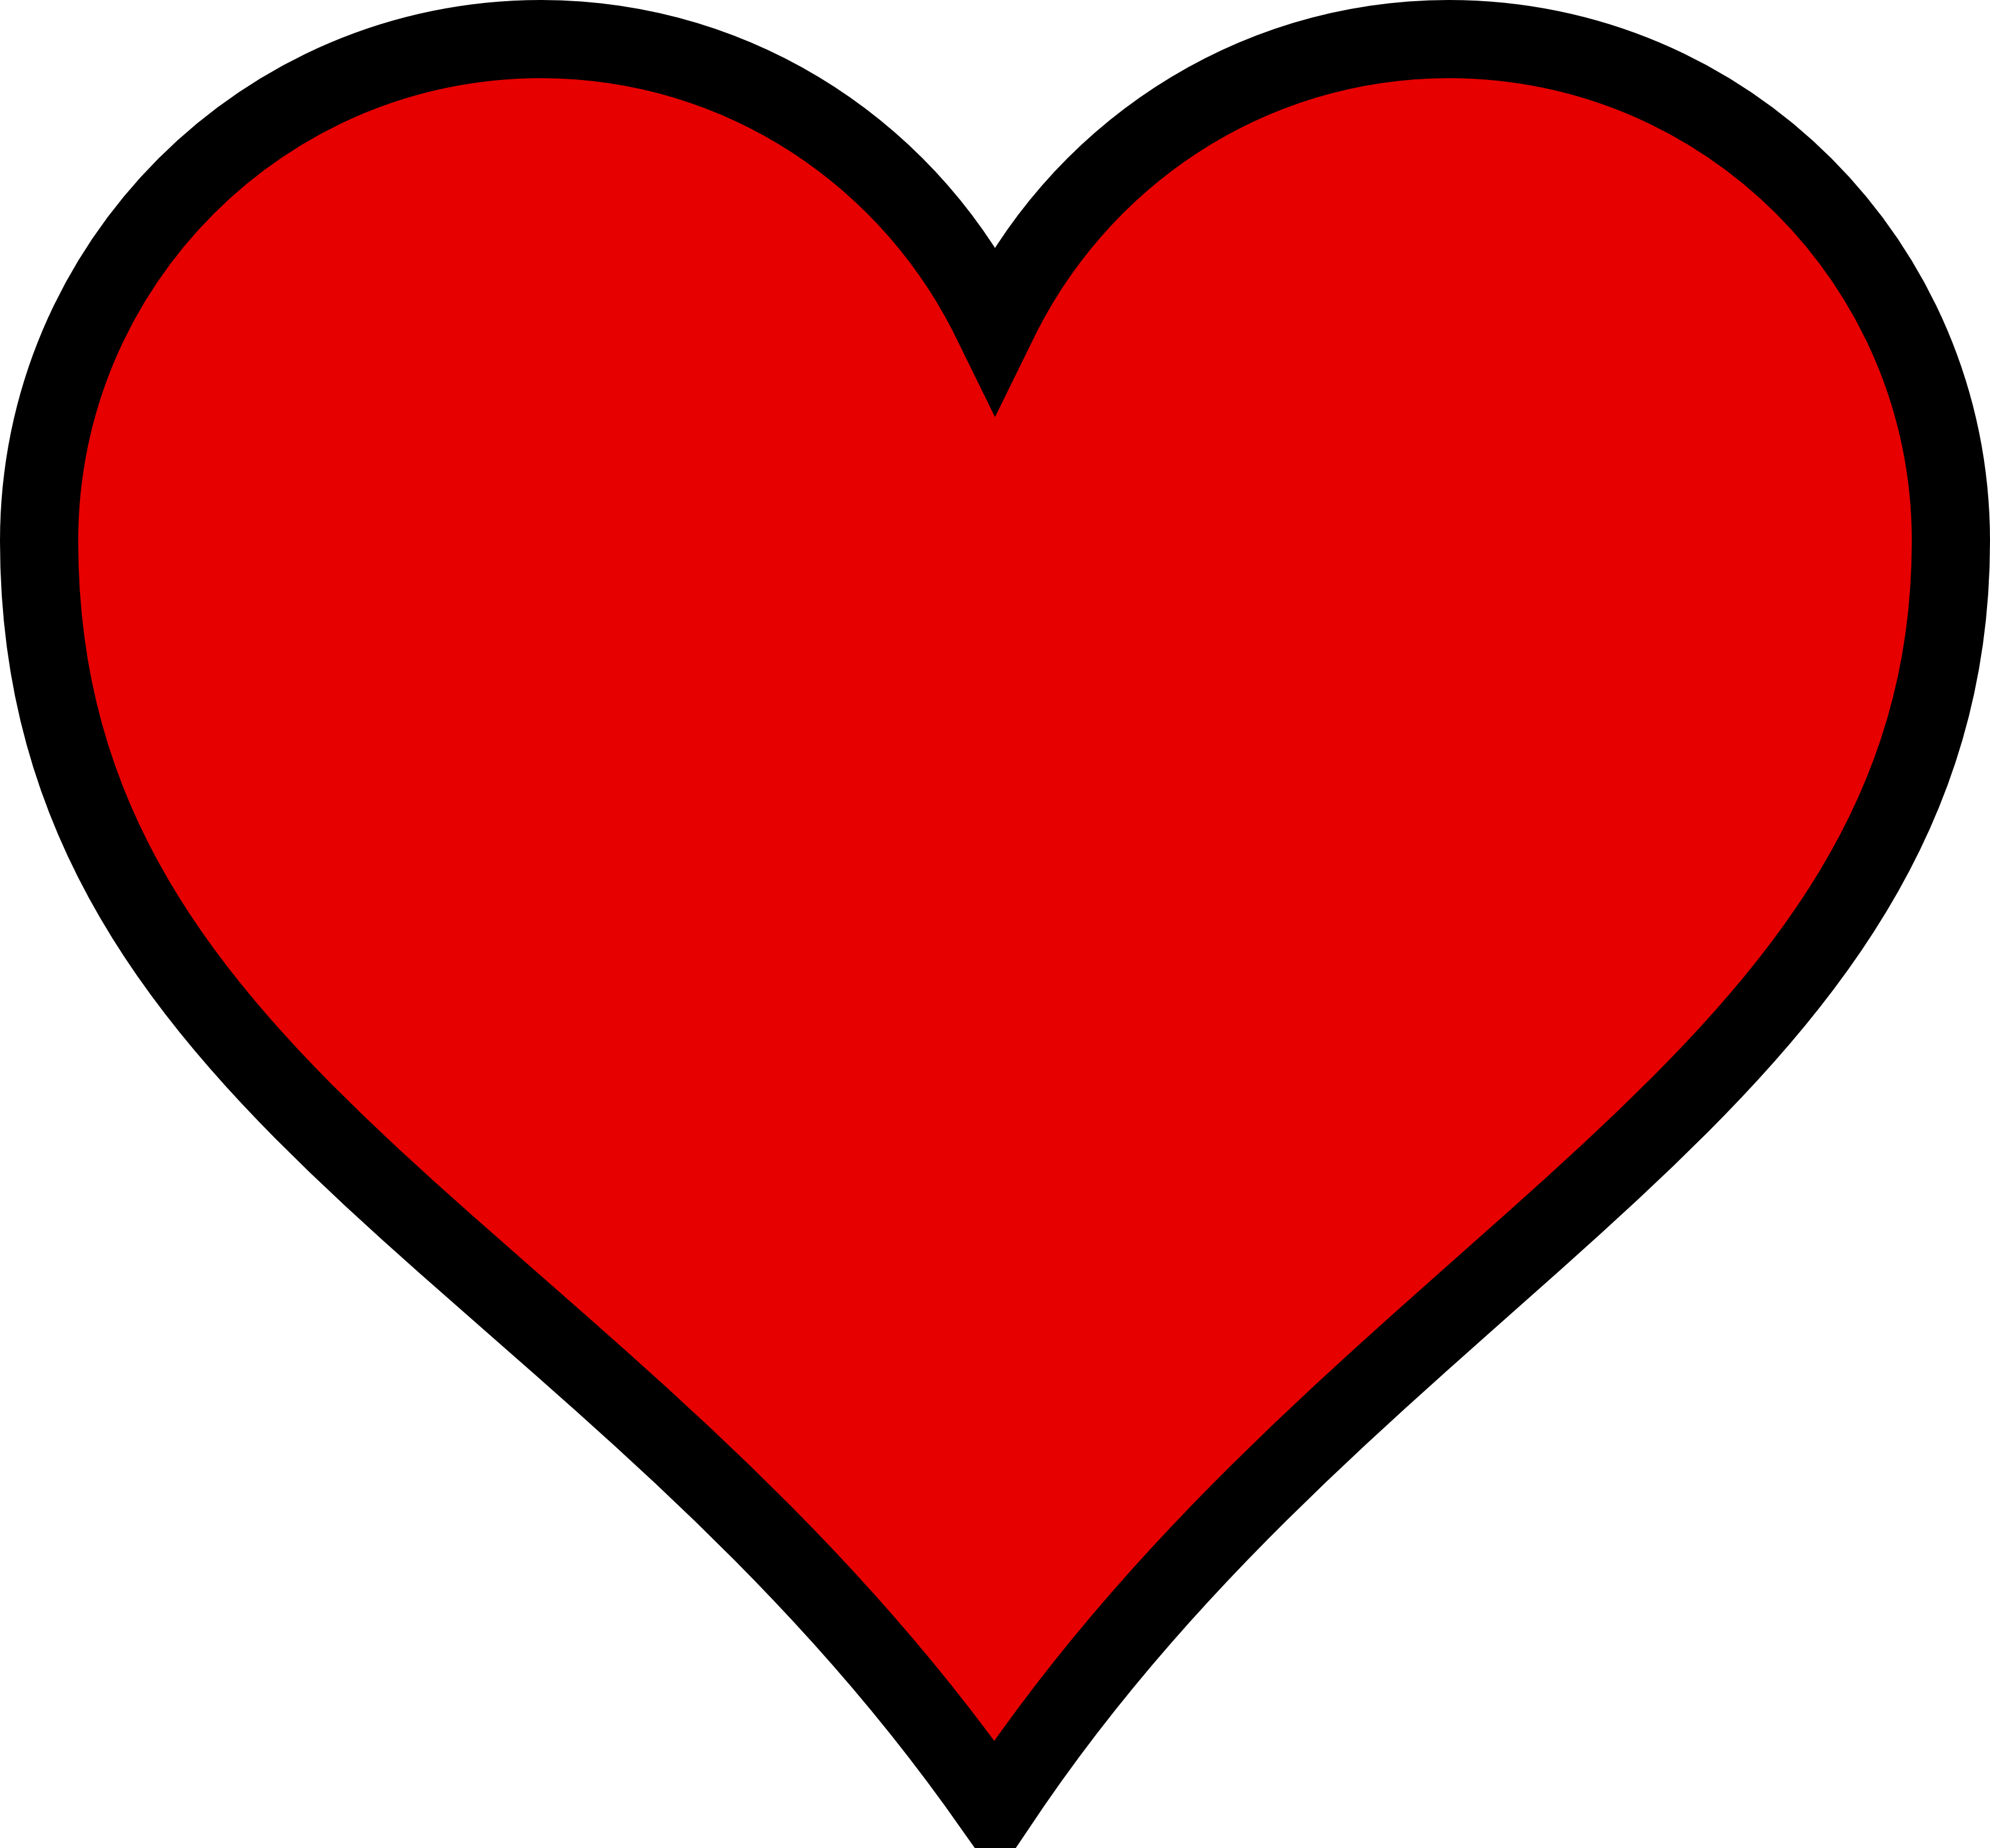 Big Heart Clipart | Free download on ClipArtMag